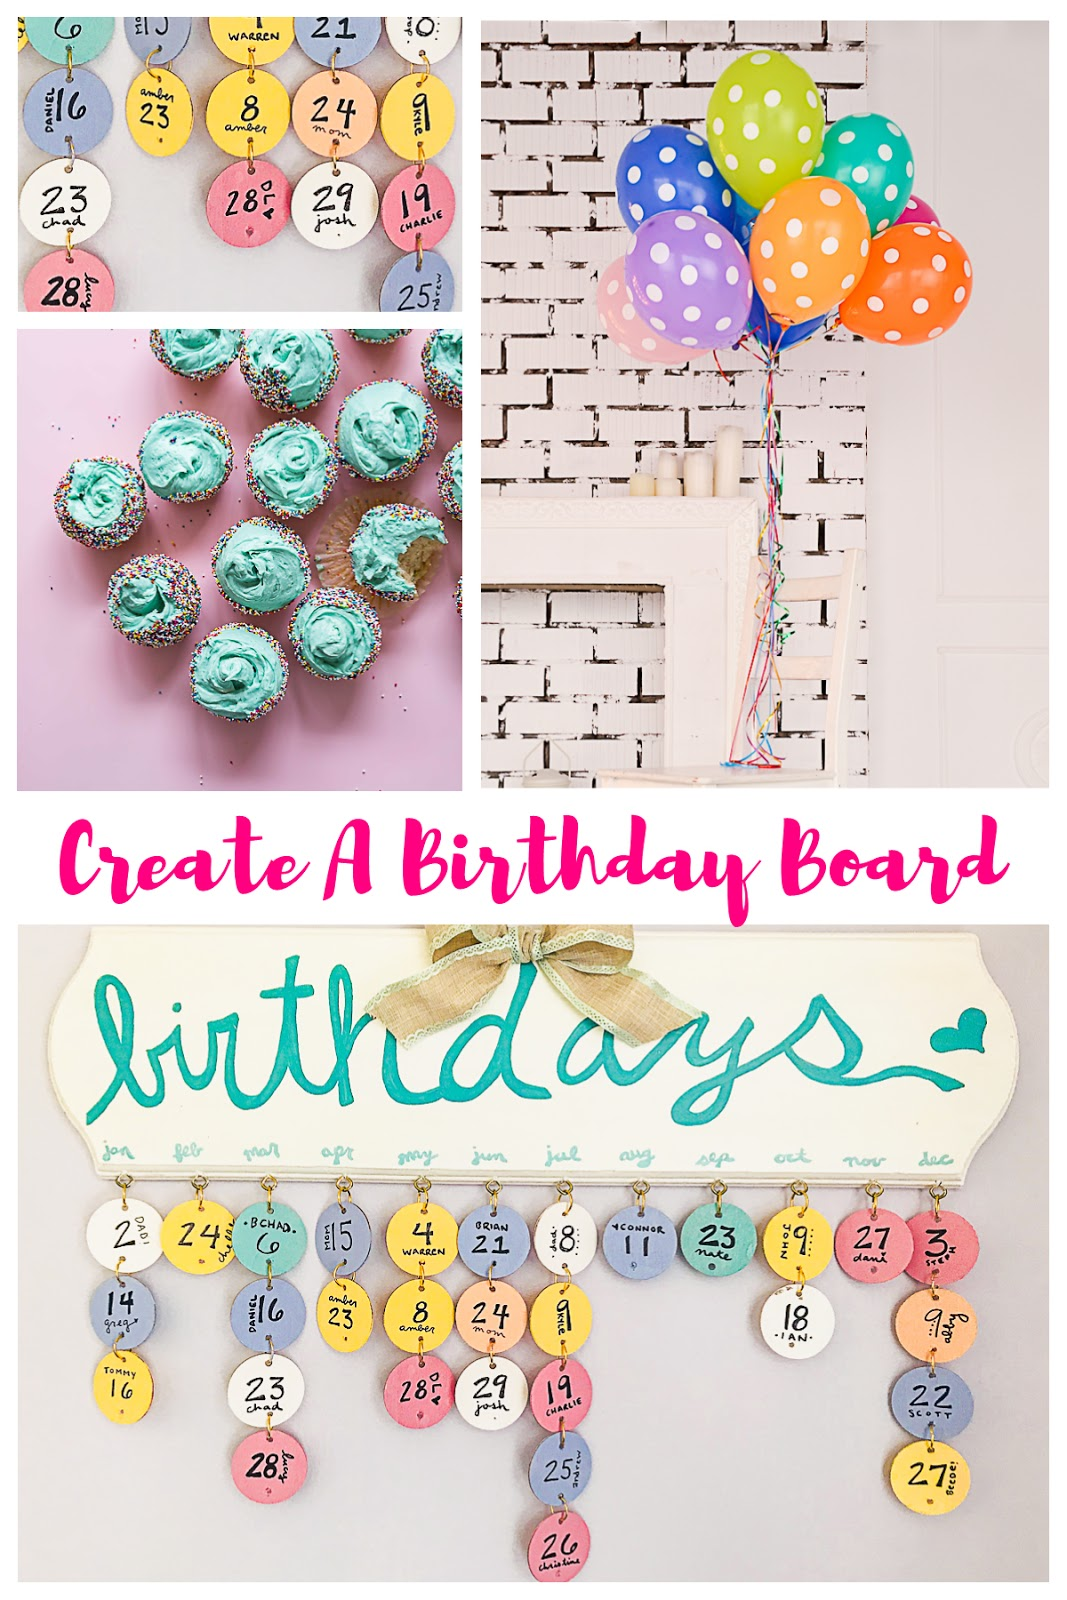 Birthday board tutorial, wood birthday calendar, balloons, celebrating birthdays, birthday calendar,